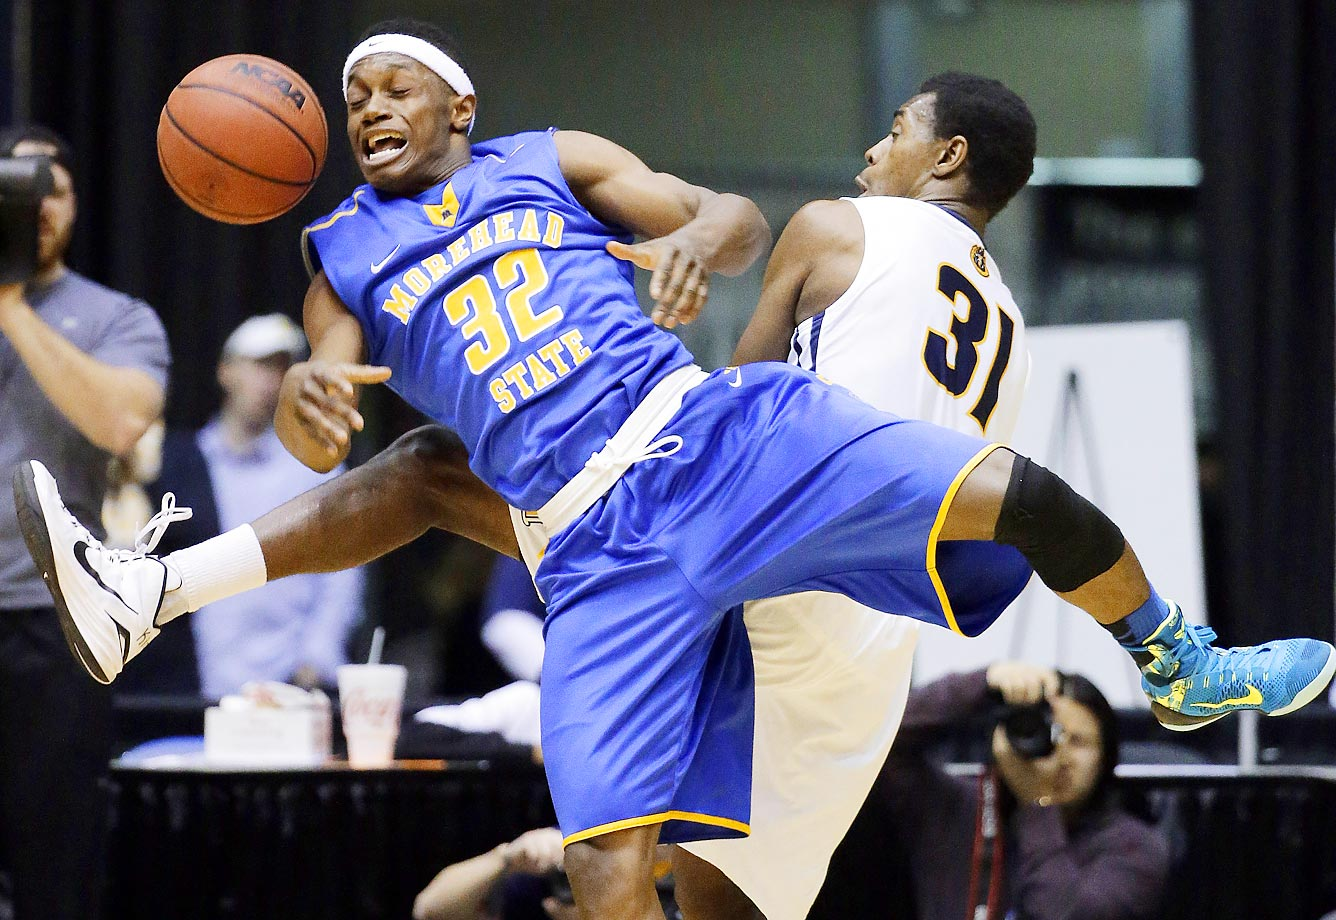 Morehead State guard Brent Arrington and Murray State forward Jeffery Moss scramble for a rebound.